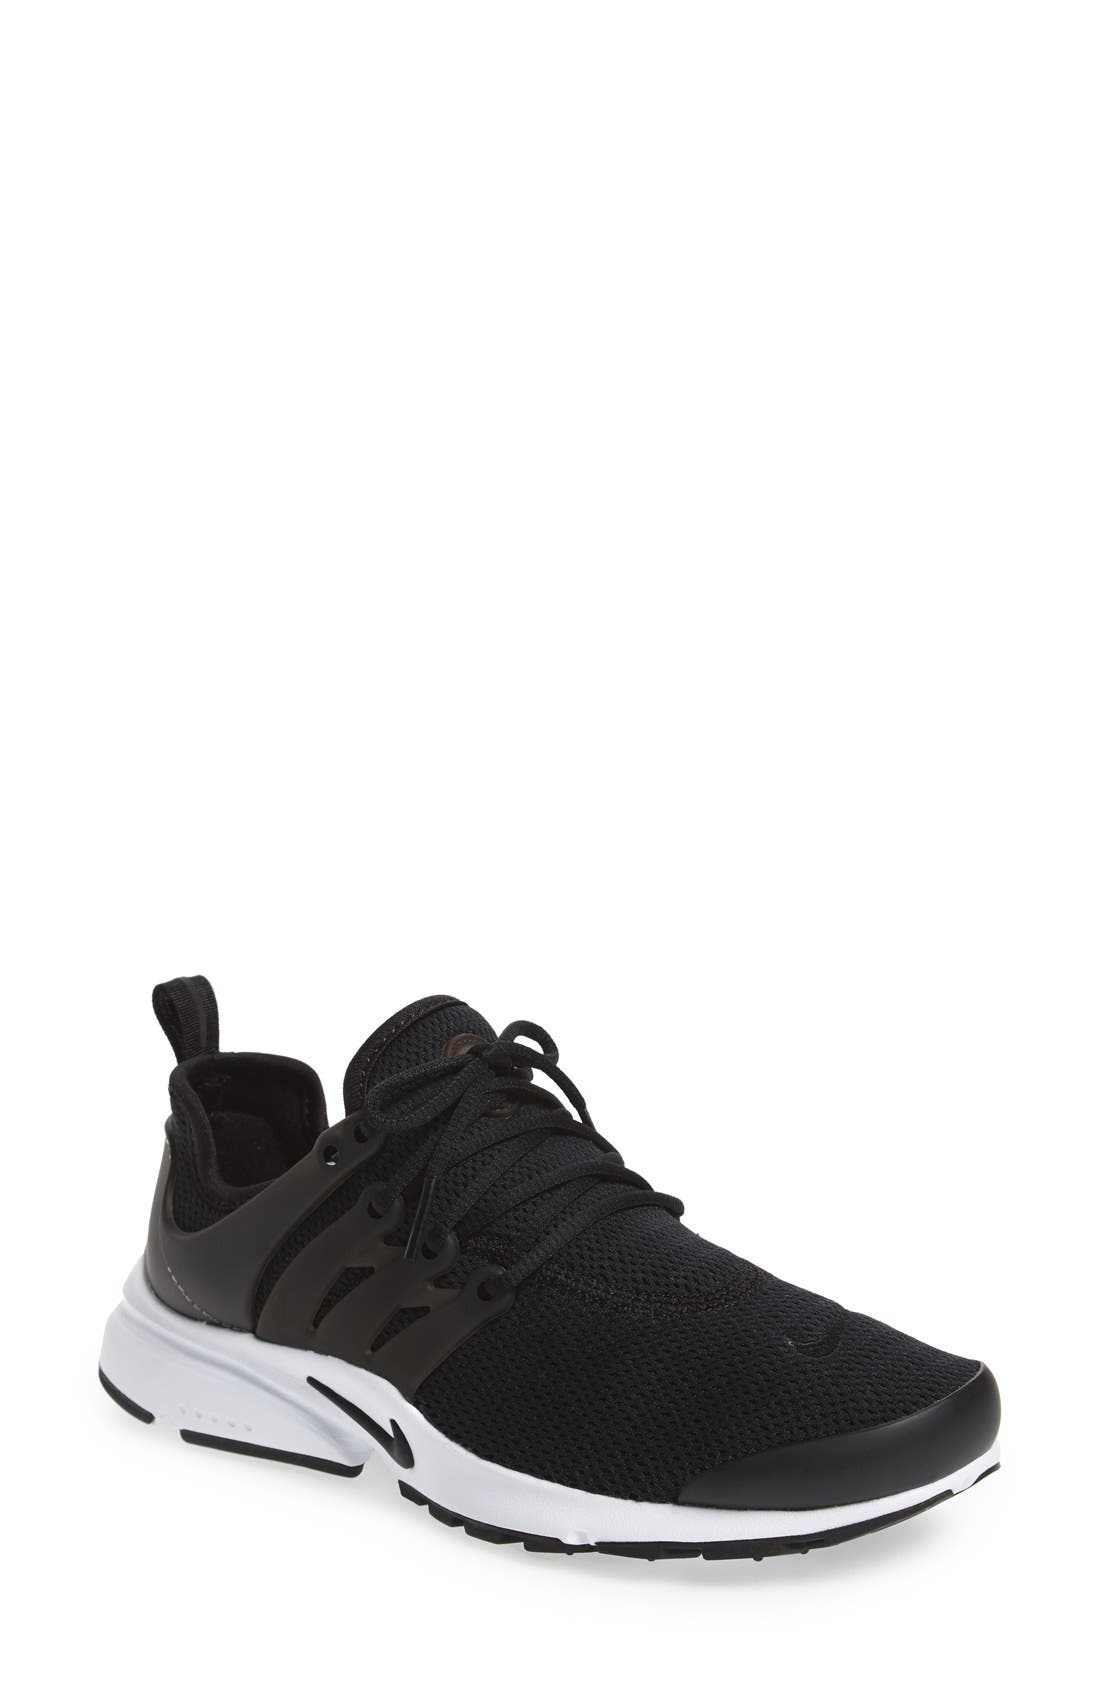 Nike Air Presto Sneaker (Women)